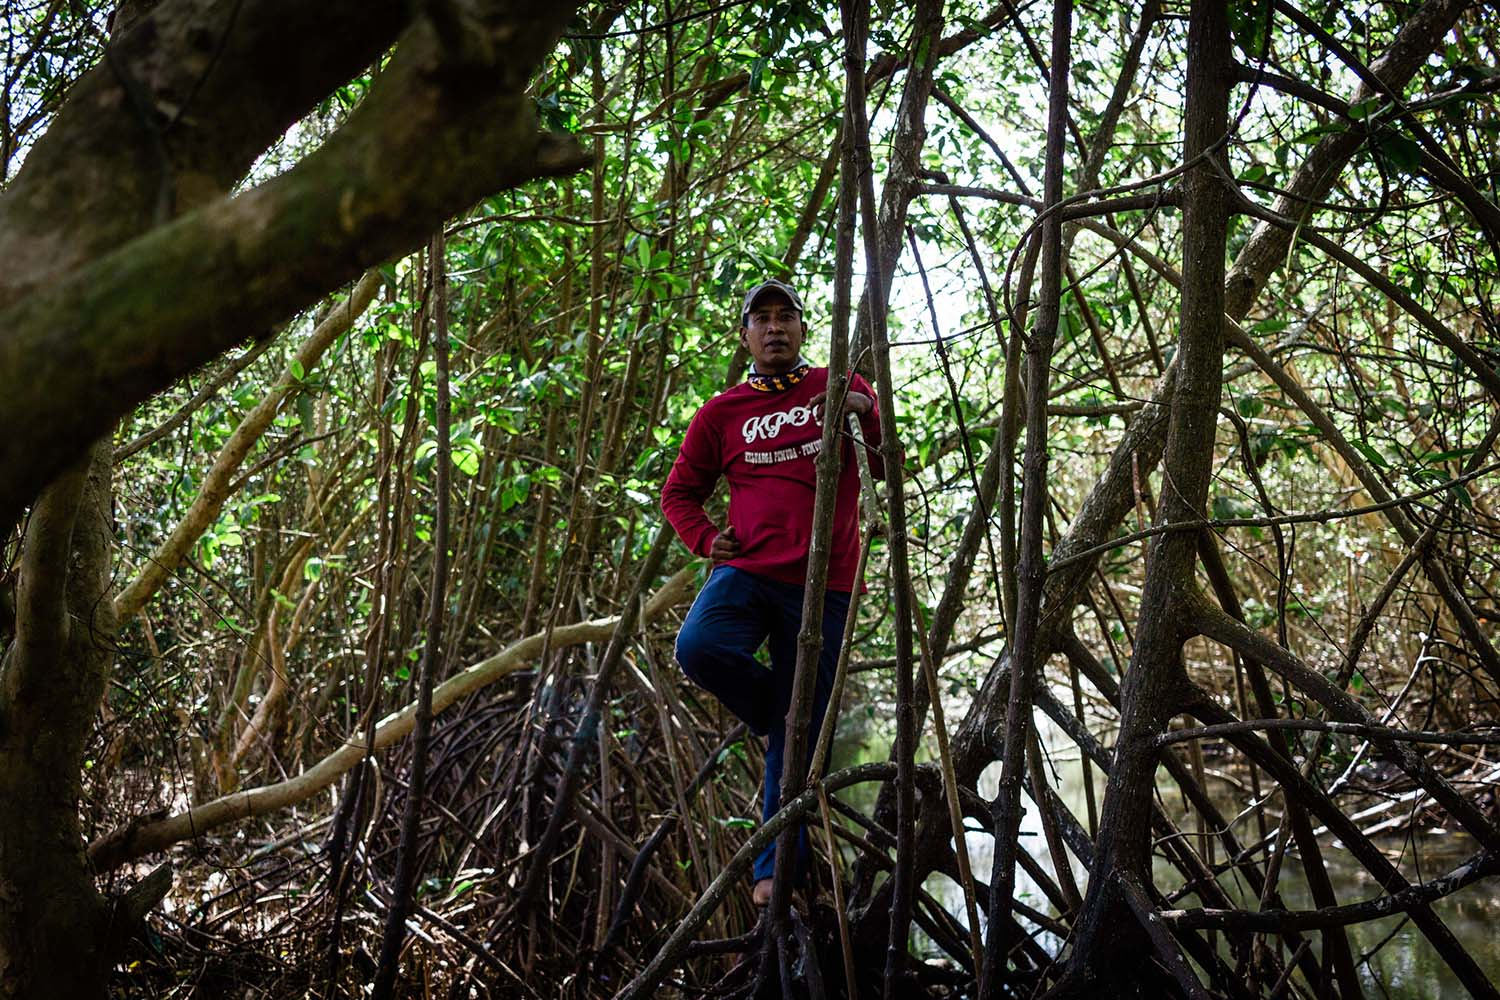 Antarmoro poses among the strong mangrove roots. JP/Anggertimur Lanang Tinarbuko